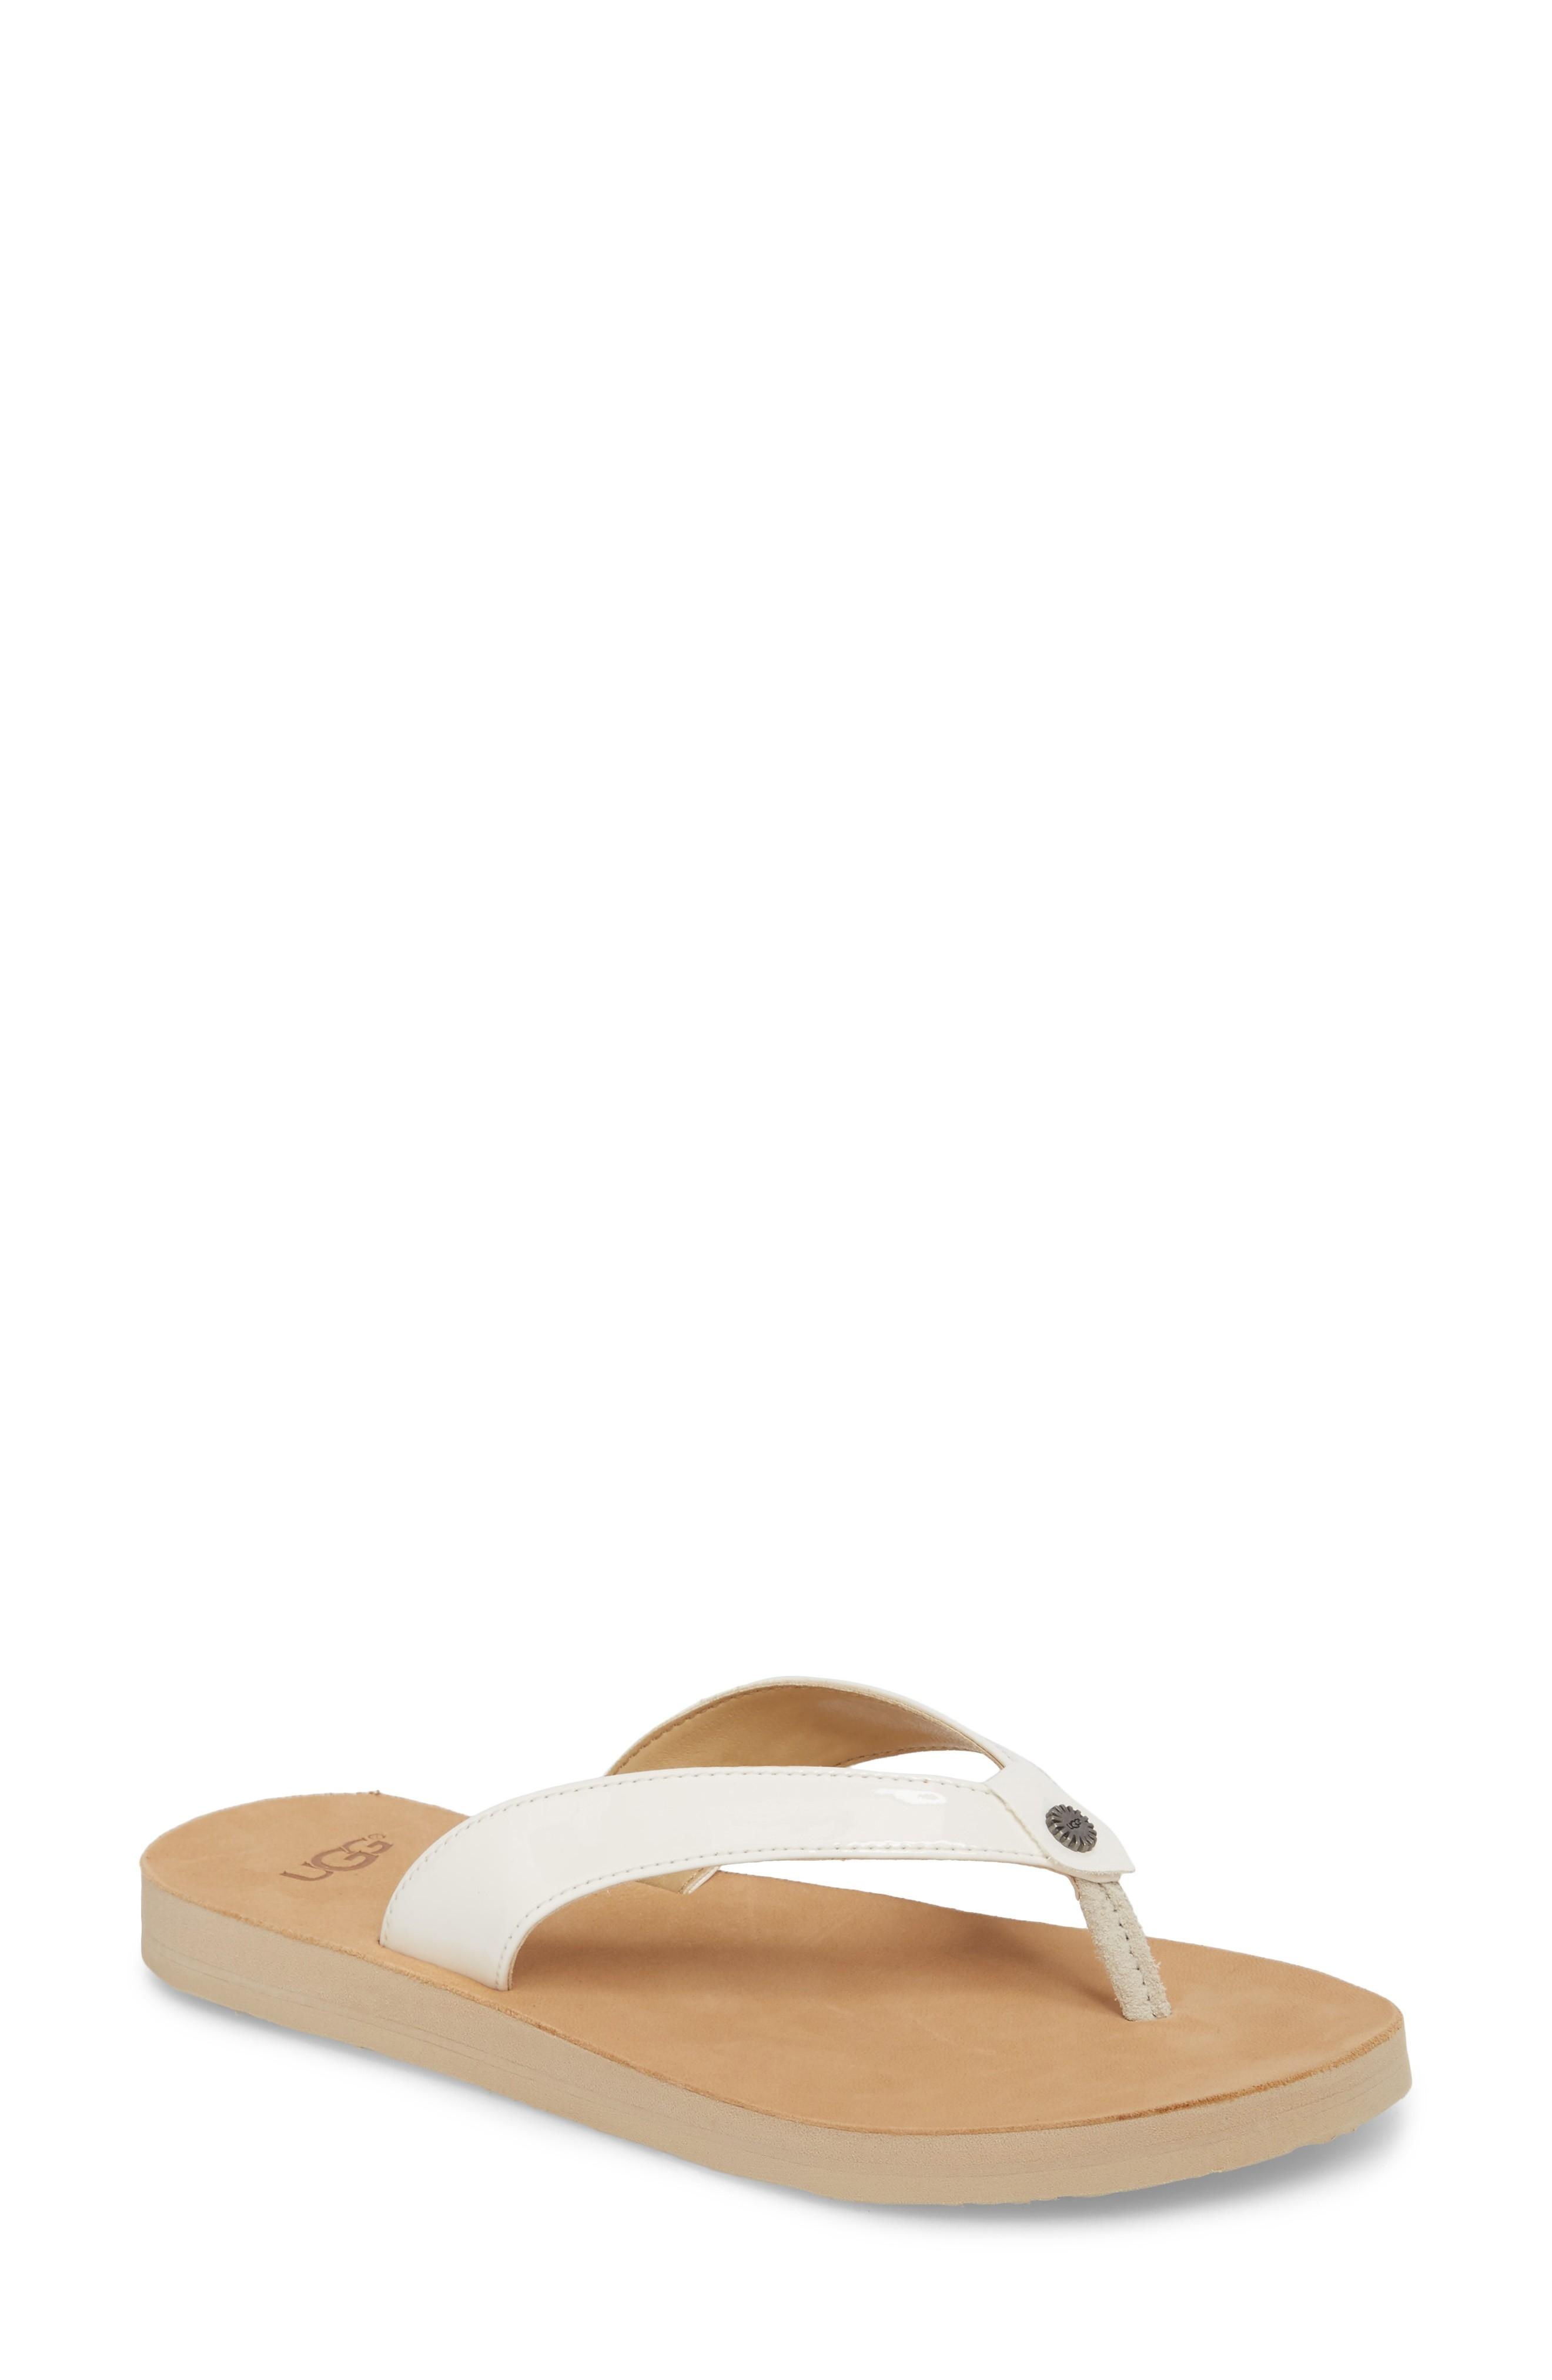 1a01811fd768 Signature hardware gleams on the suede straps of this quintessential casual  flip-flop. Style Name  Ugg Tawney Flip Flop (Women). Style Number  5507207.